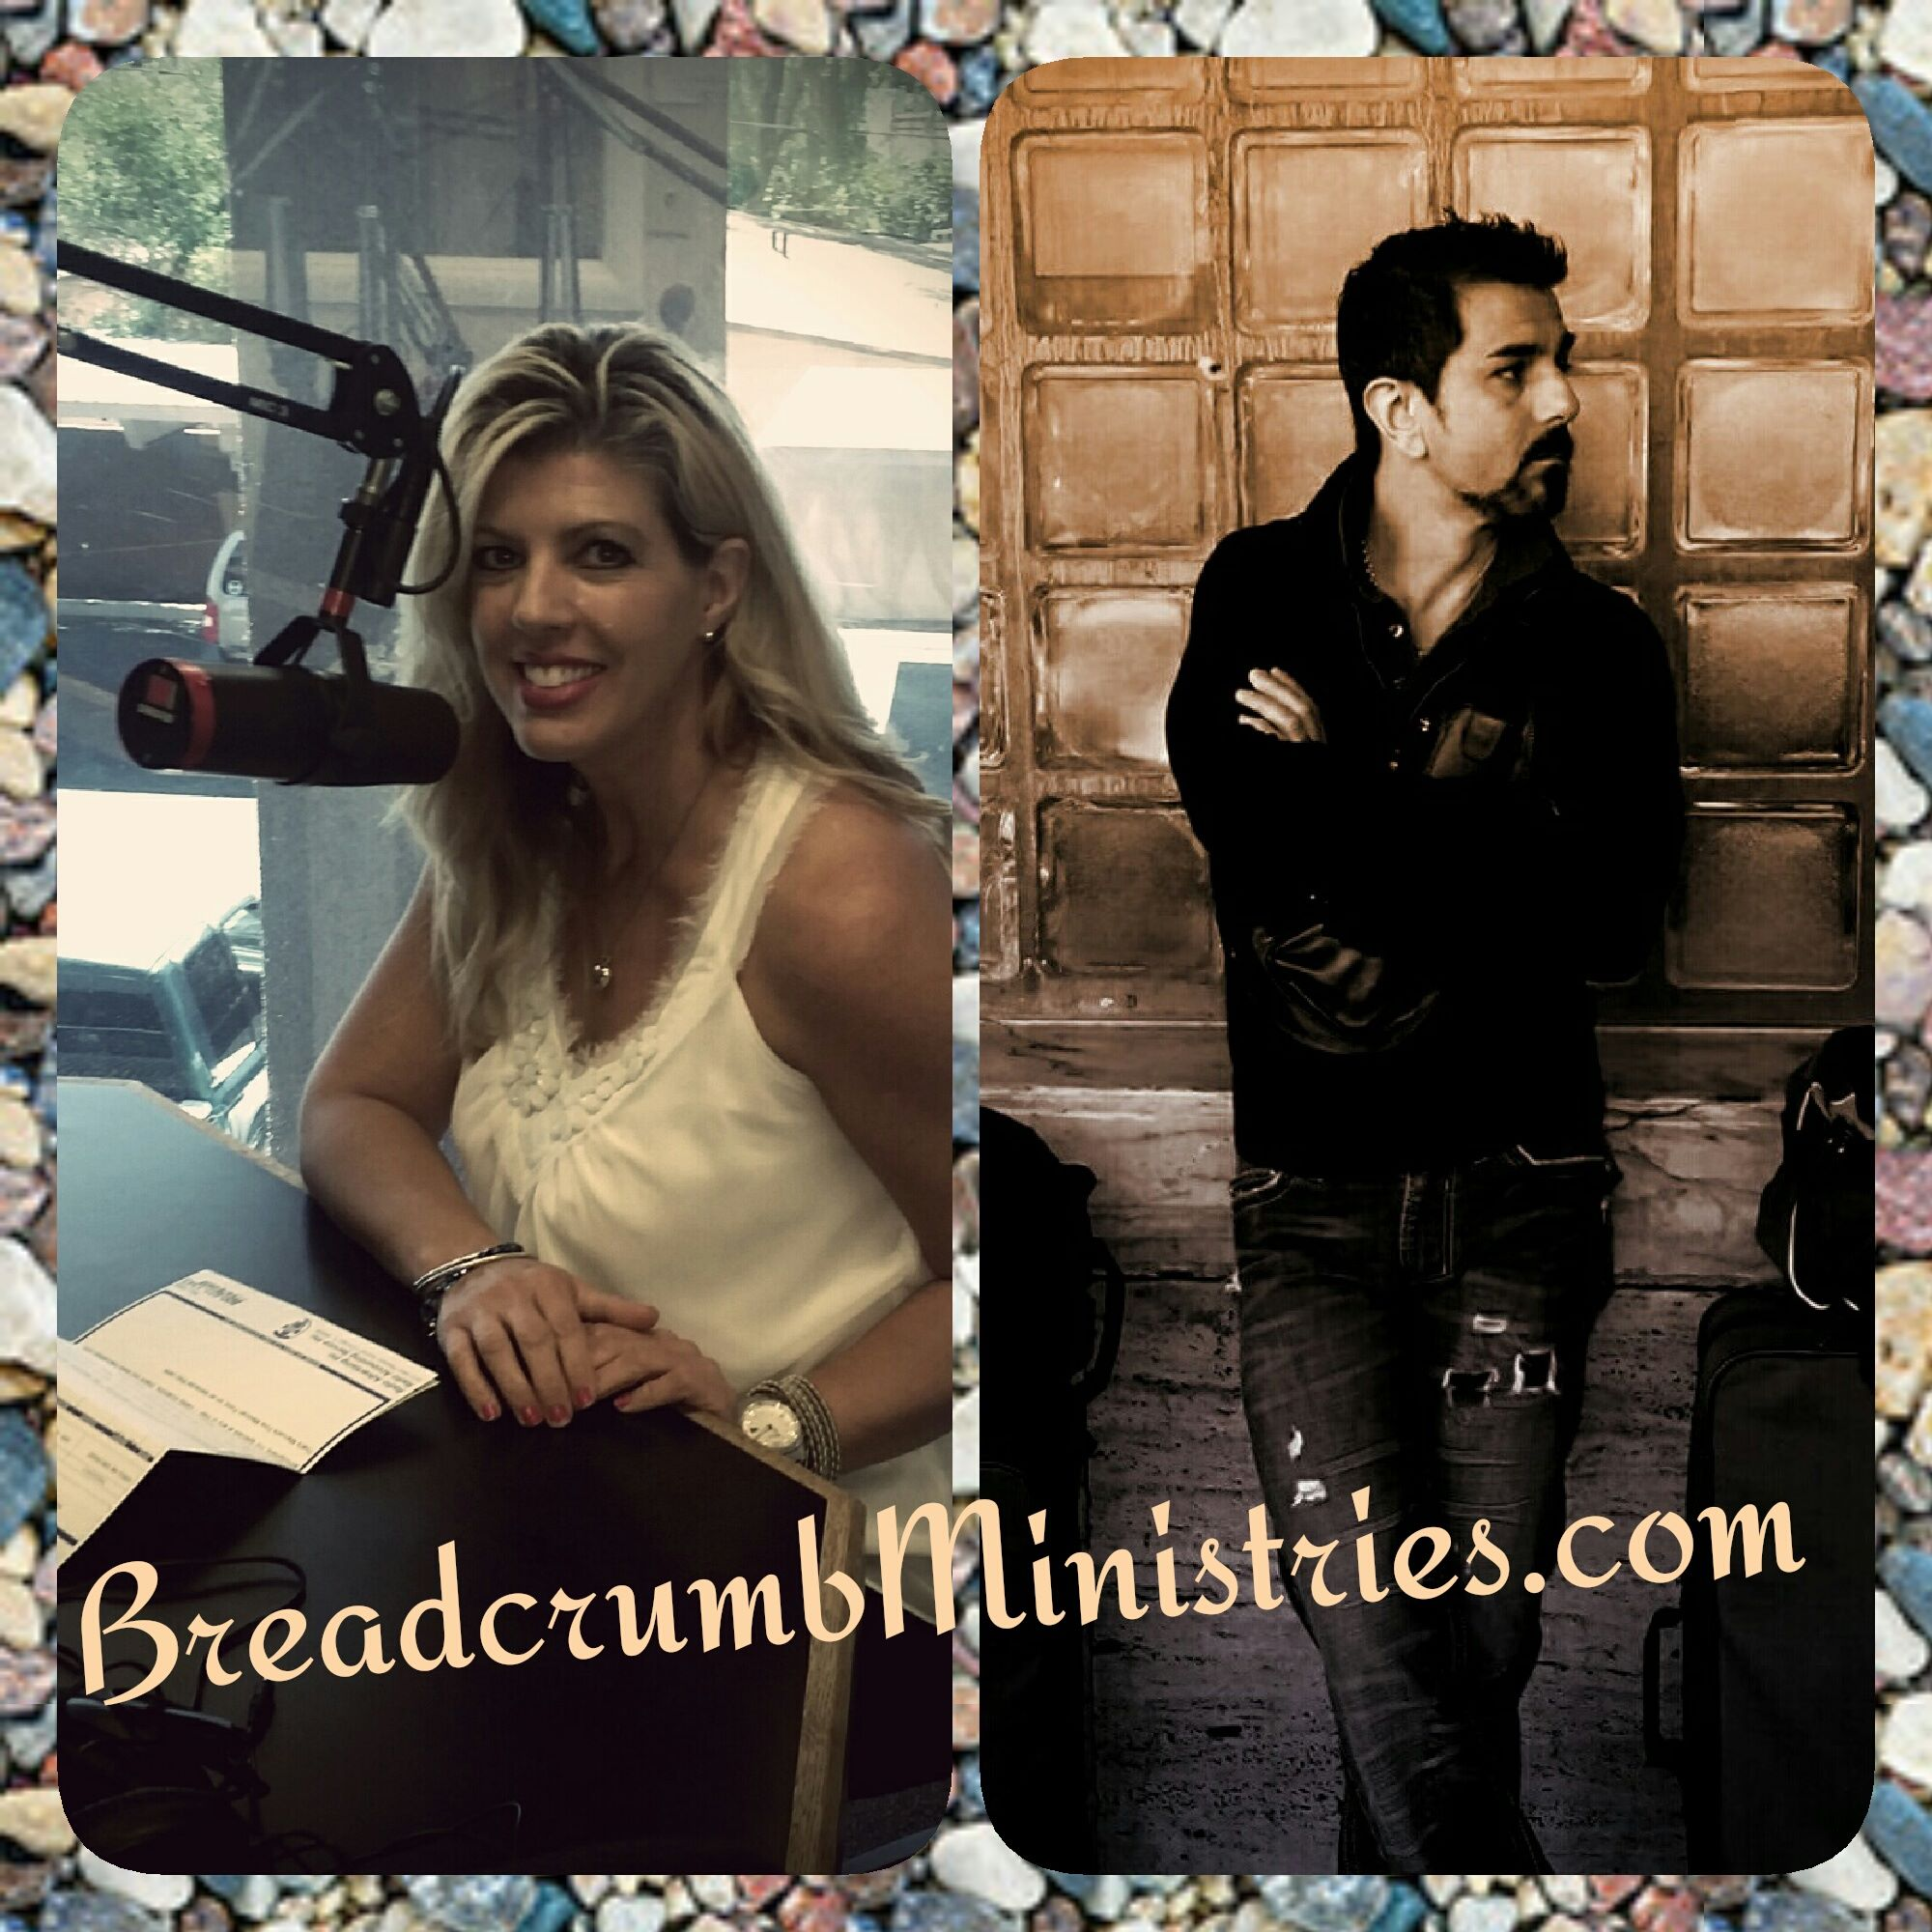 BreadcrumbMinistries.com